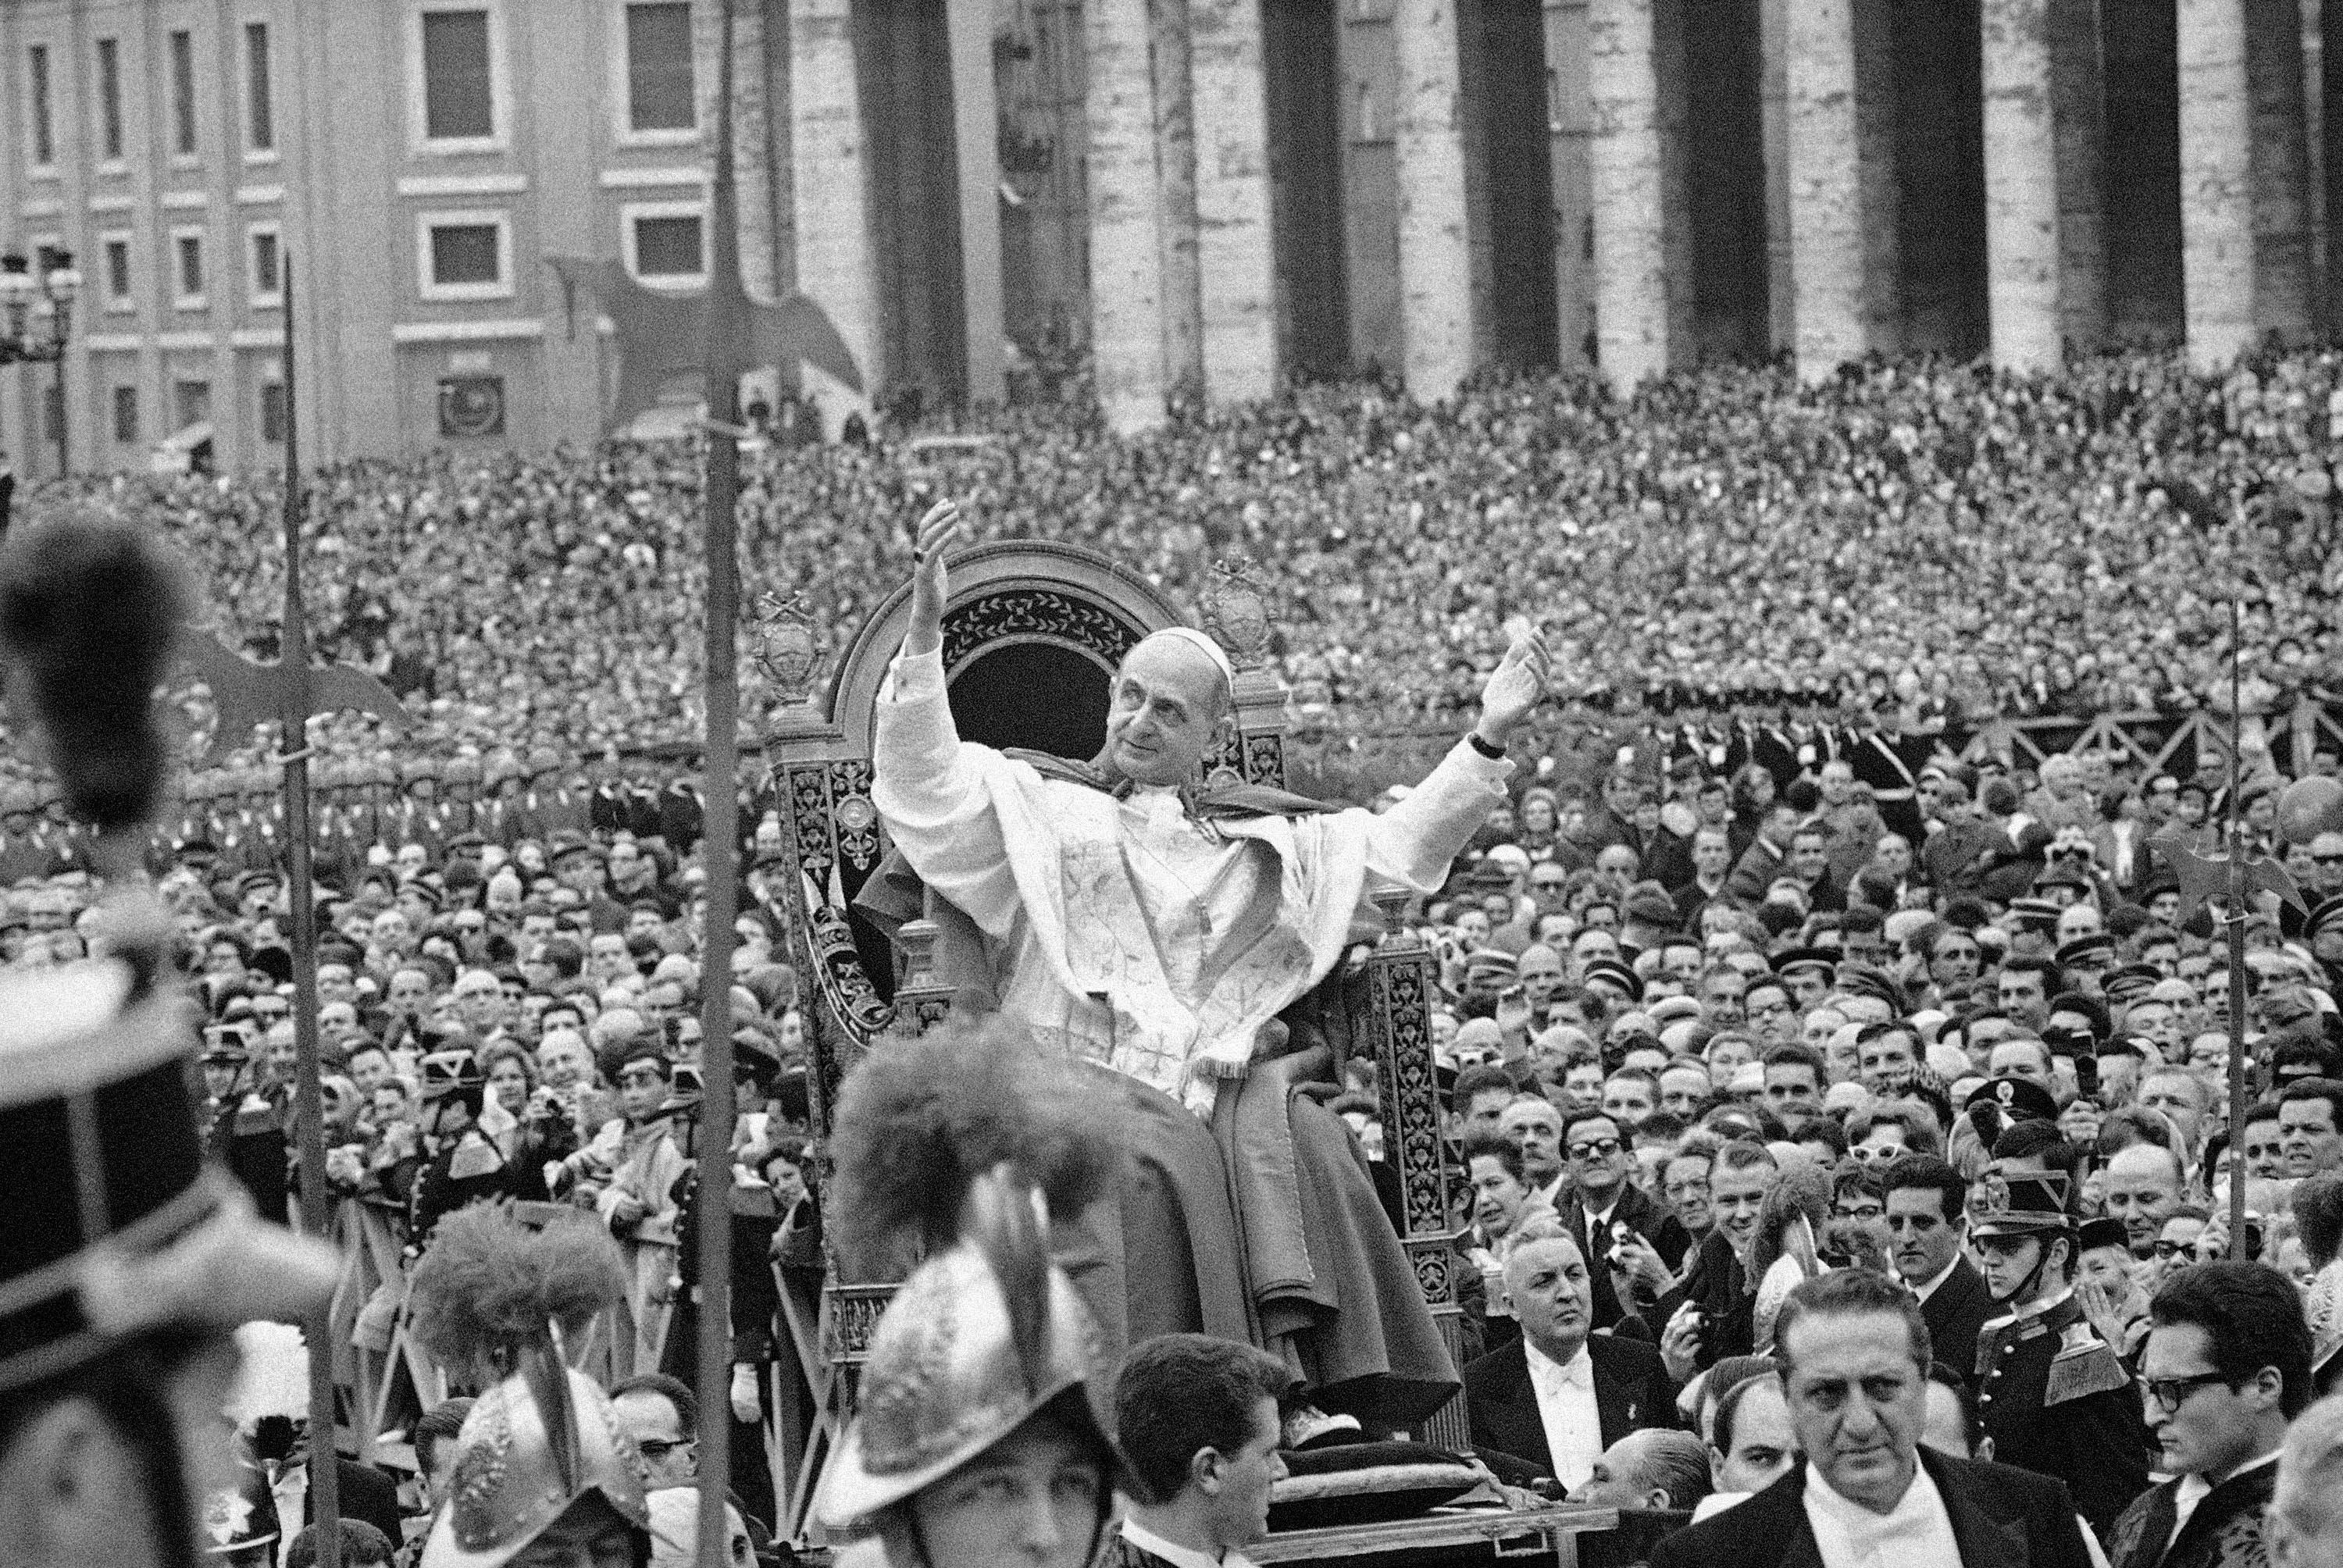 "In this file photo taken on March 29, 1964, Pope Paul VI salutes a crowd estimated at 200,000 as he is carried on portable throne through St. Peter's Square in Vatican City. Pope Francis has approved a miracle credited to the intercession of Paul VI and set the date for the late pontiff's beatification for Oct. 19, the Vatican said Saturday, May 10. Francis had authorized the beatification, the last formal step before possible sainthood, a day earlier, the Vatican said. Paul VI, who reigned as pontiff from 1963-1978, made landmark progress in improving Catholics' relationship with other Christians. His papacy is also remembered by his decision, after years of study, to ban contraception for Catholics, in a 1968 encyclical, ""Humanae Vitae"" (""of human life"")."